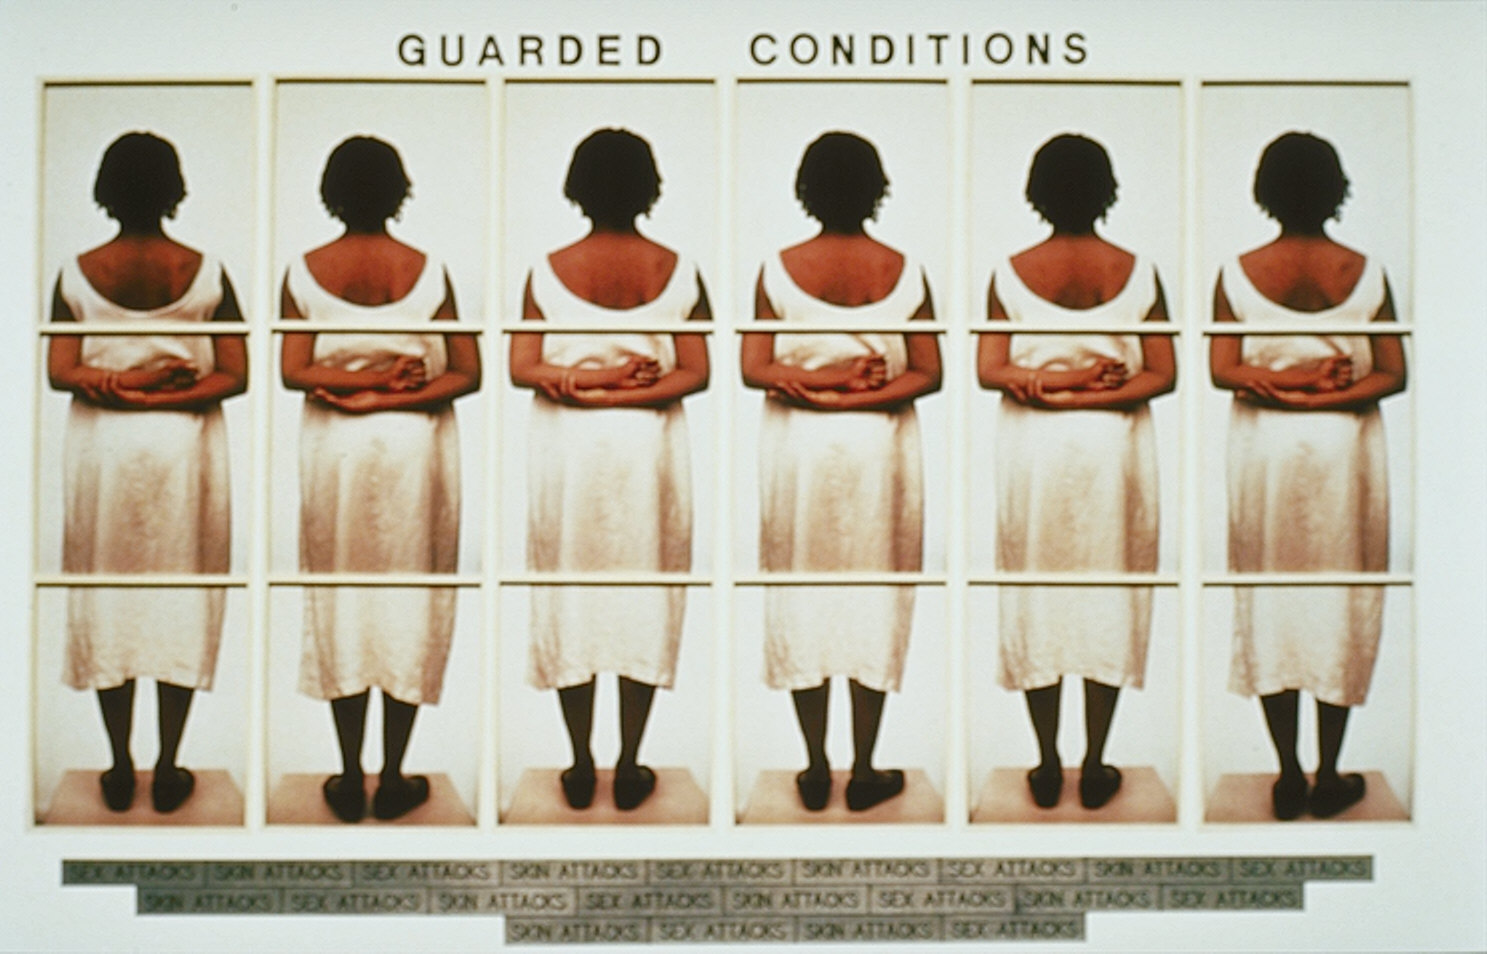 Guarded Conditions